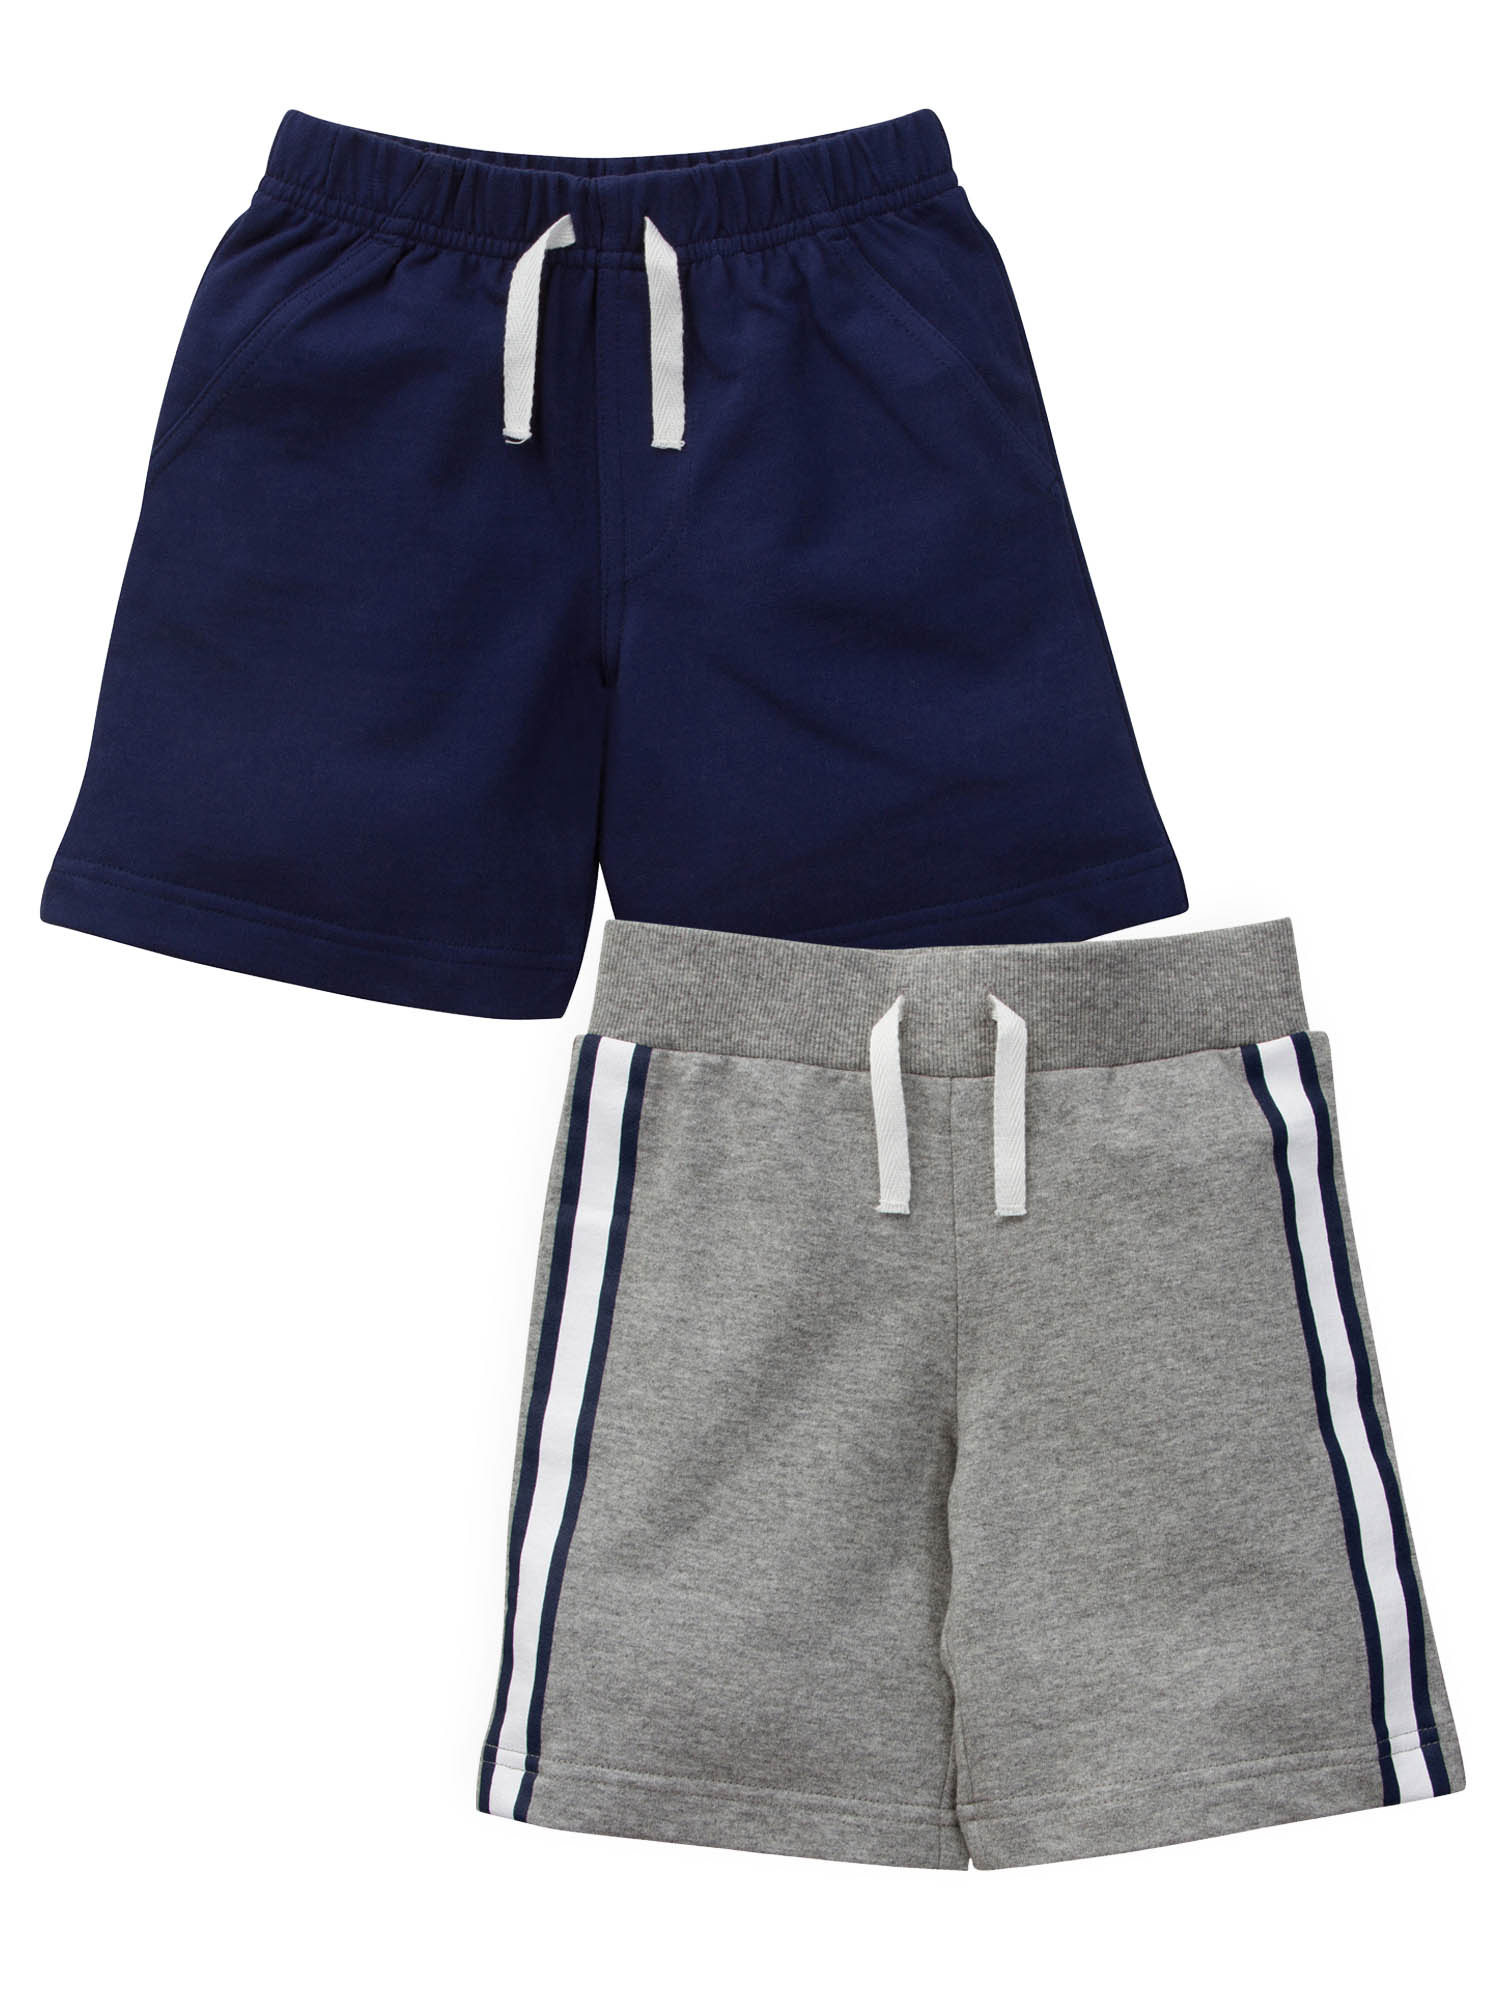 French Terry Shorts, 2pk (Baby Boys and Toddler Boys)